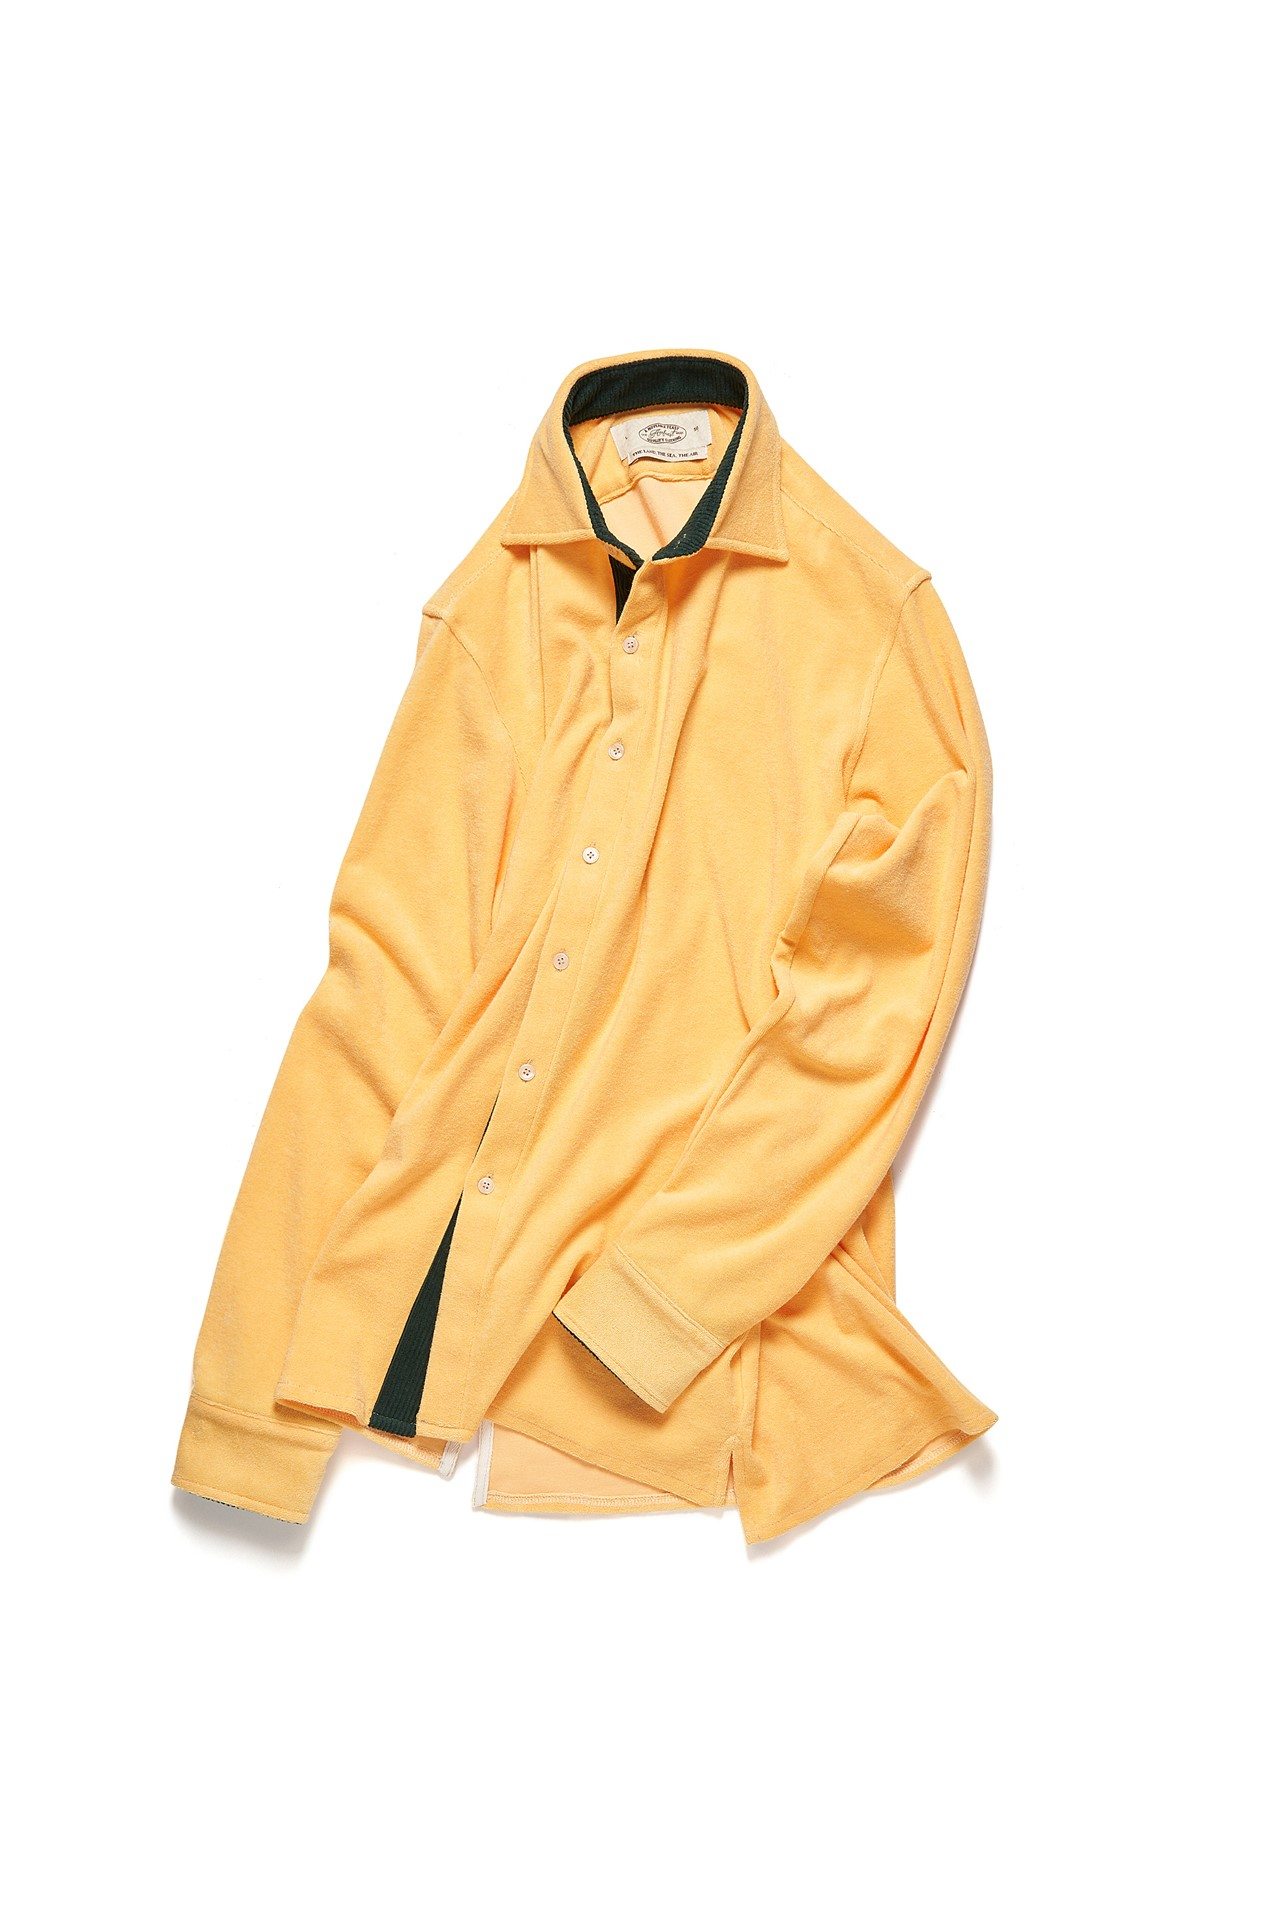 HOLIDAY TERRY COTTON SHIRT_YELLOWAmfeast(암피스트)